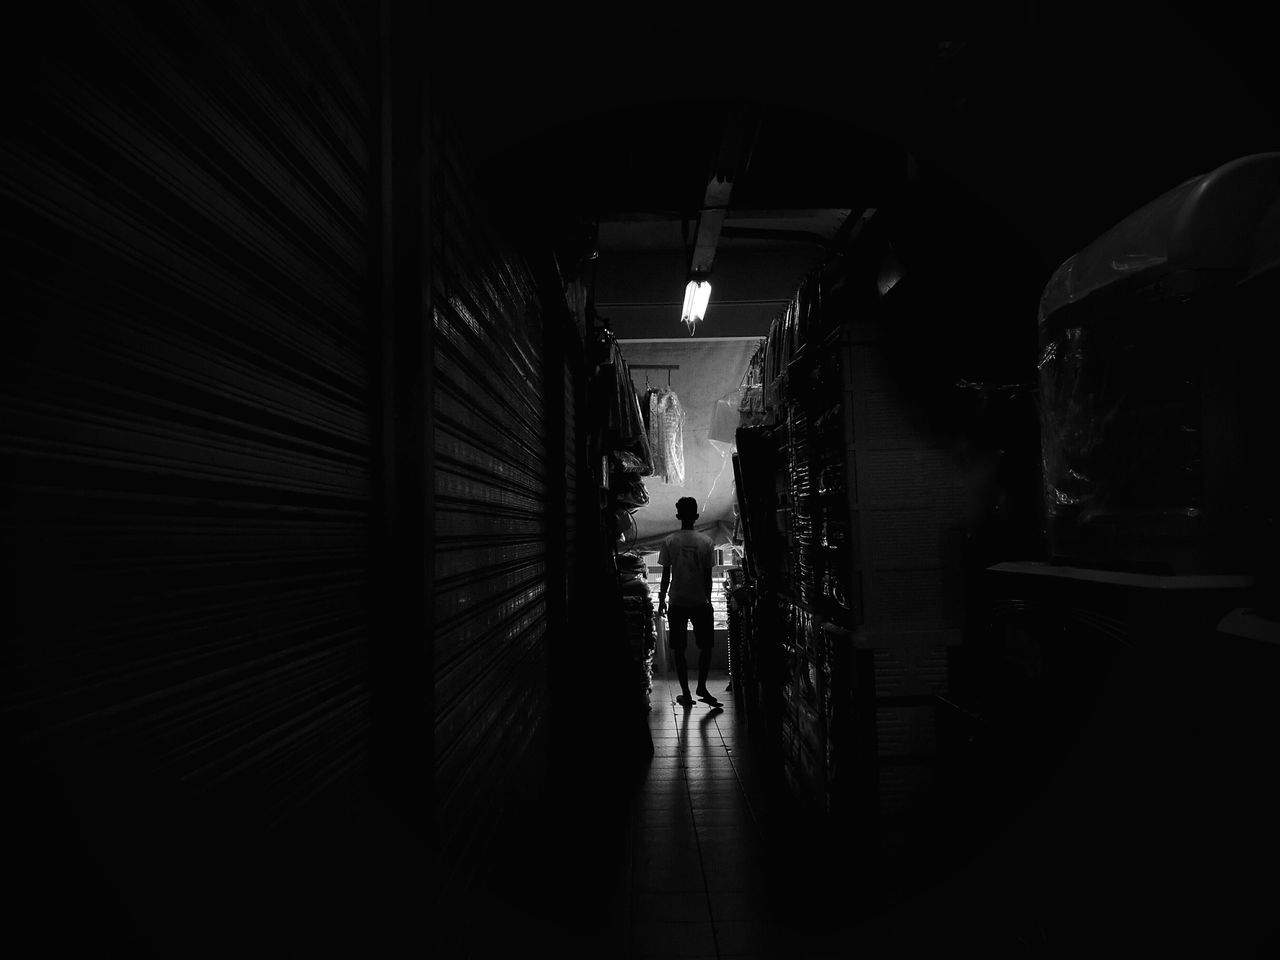 A dark alley inside a public market. Streetphotography Indoors  Huawei P9 Plus Smartphone Photography Monochrome Photography